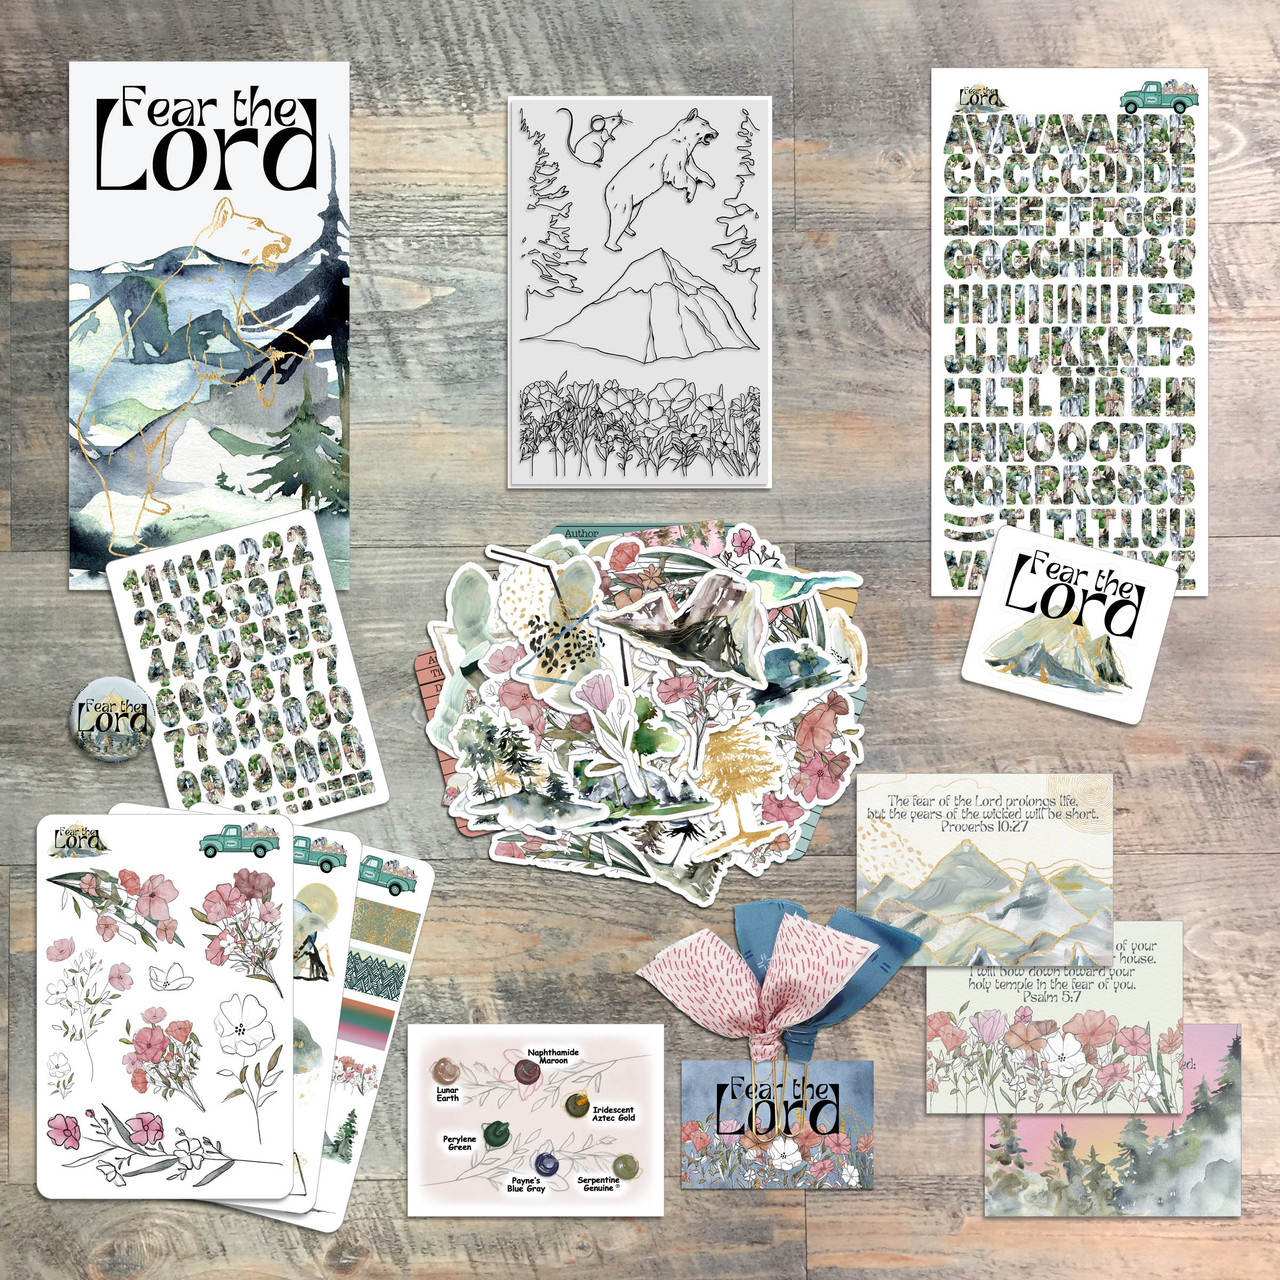 Fear the Lord - Devotional Kit for Bible Journaling